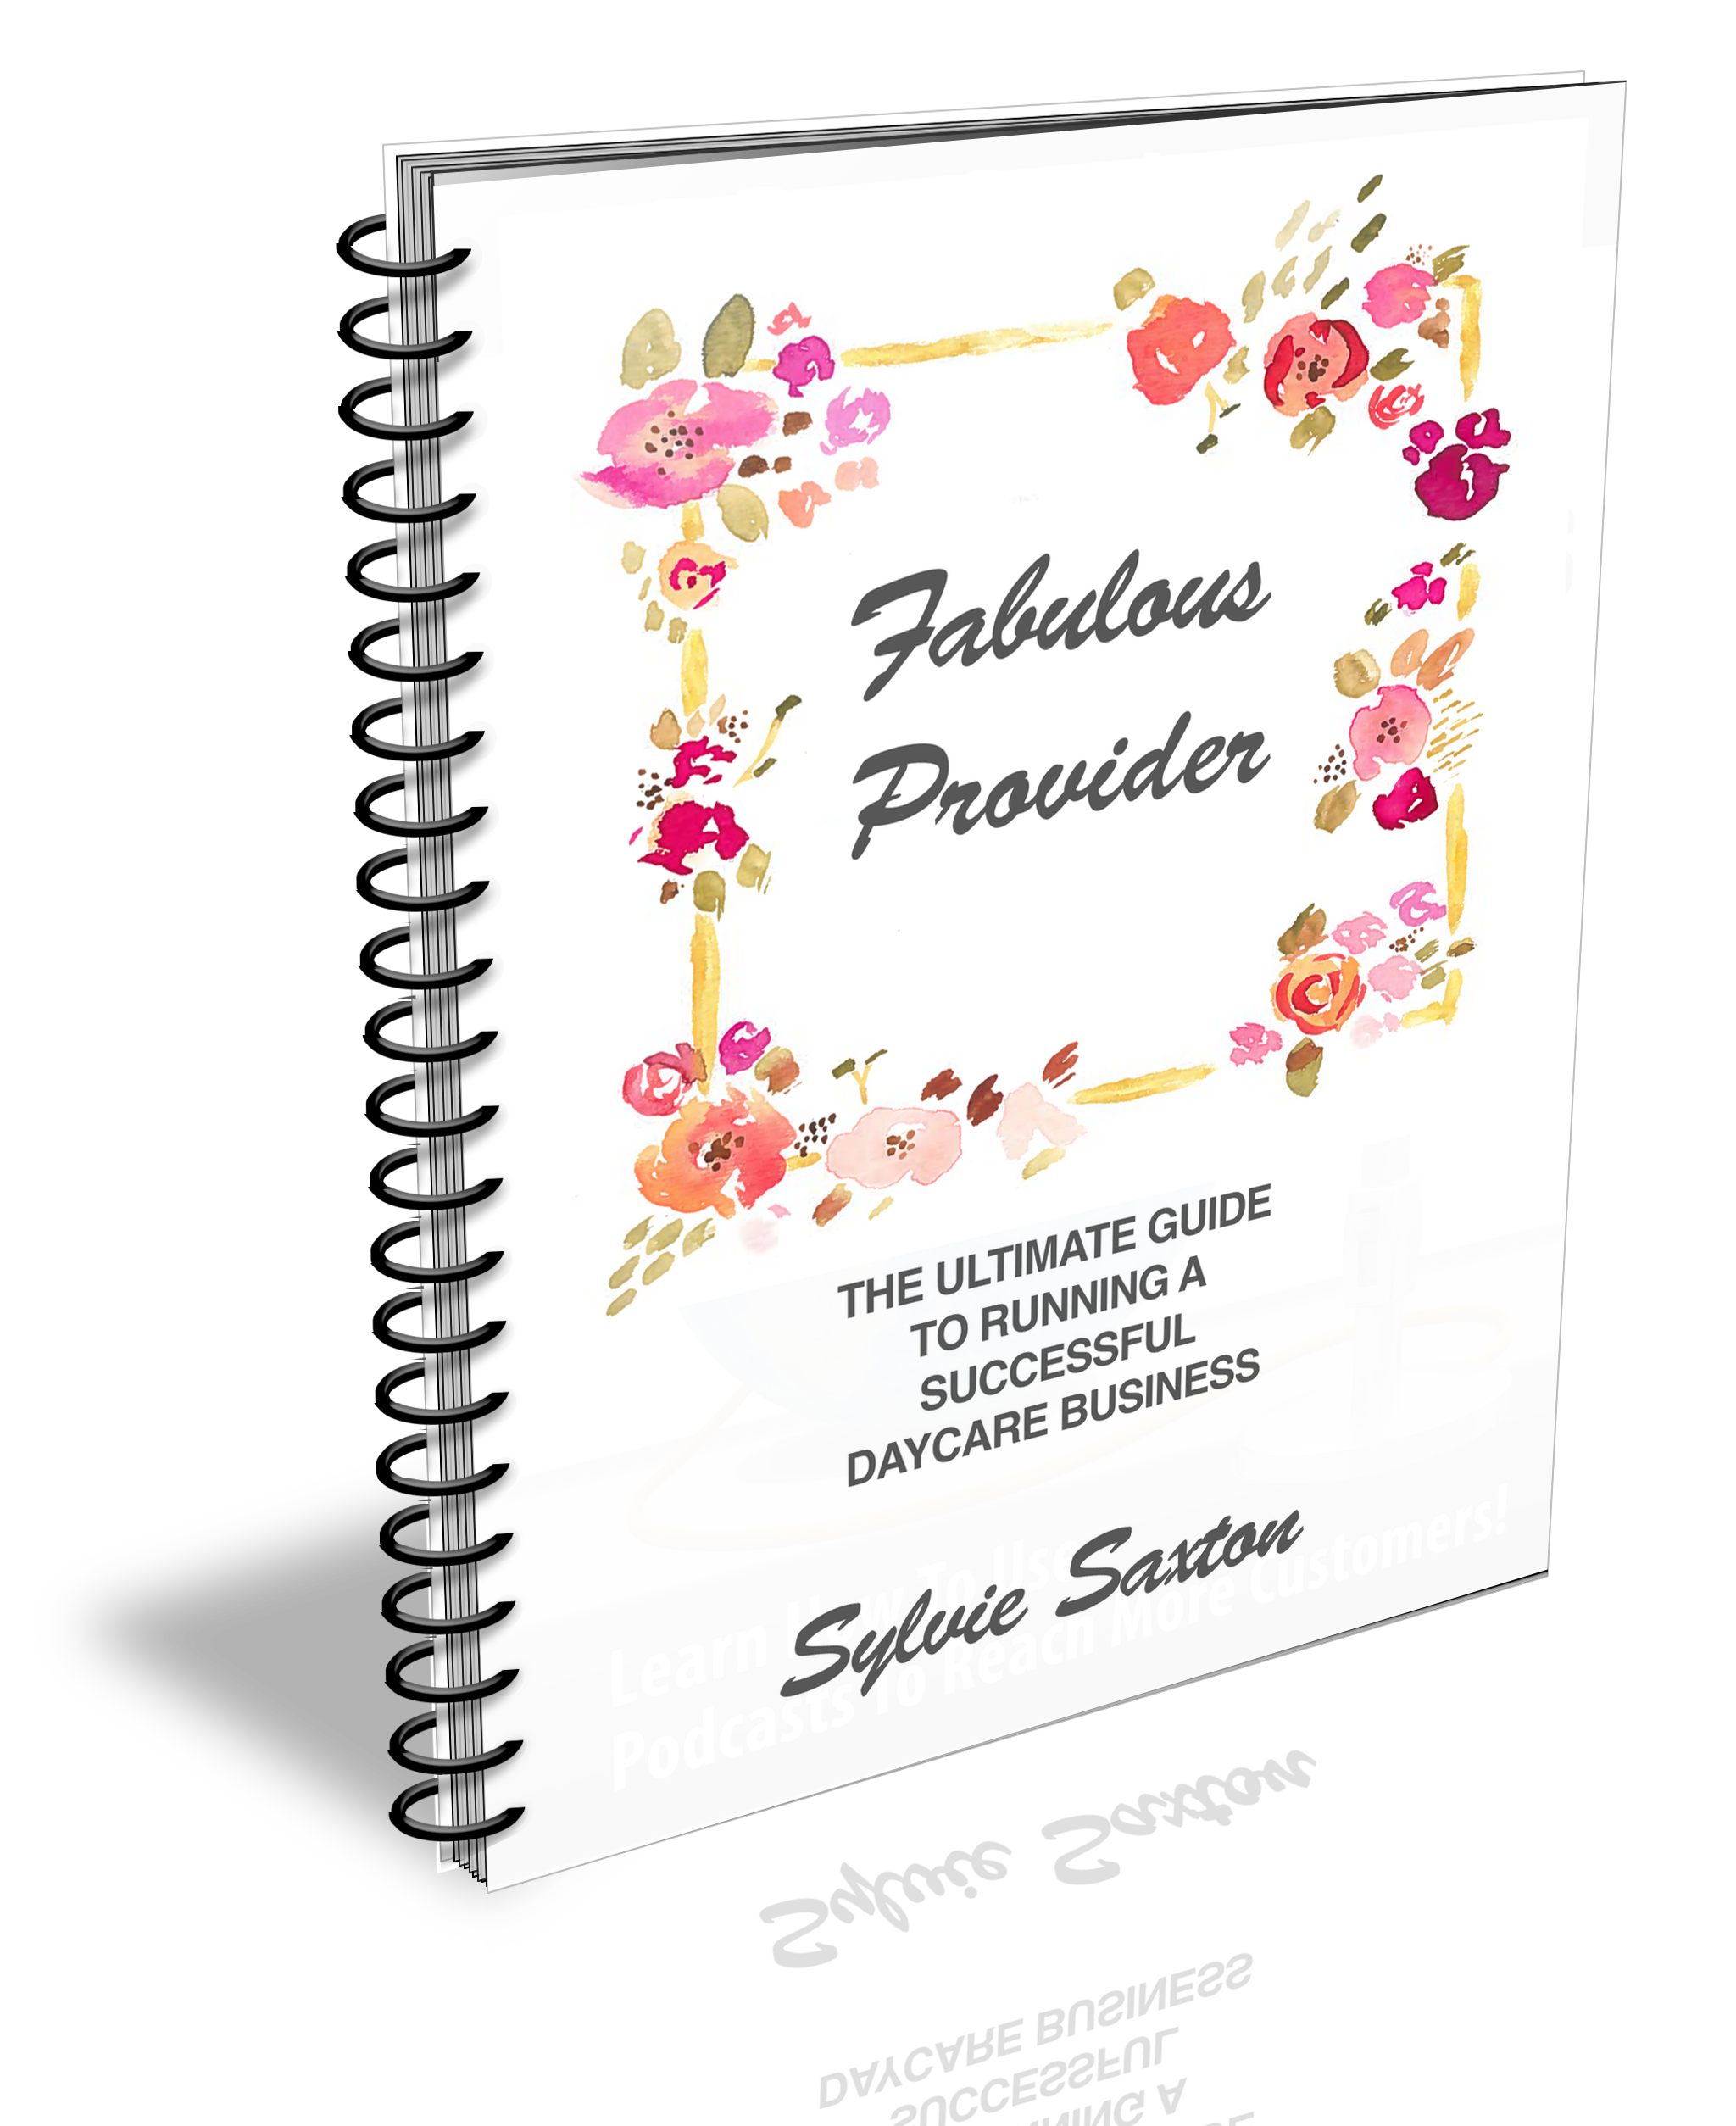 fabulous-provider-sylvie-saxton-final-cover-revised-new-3d-trans